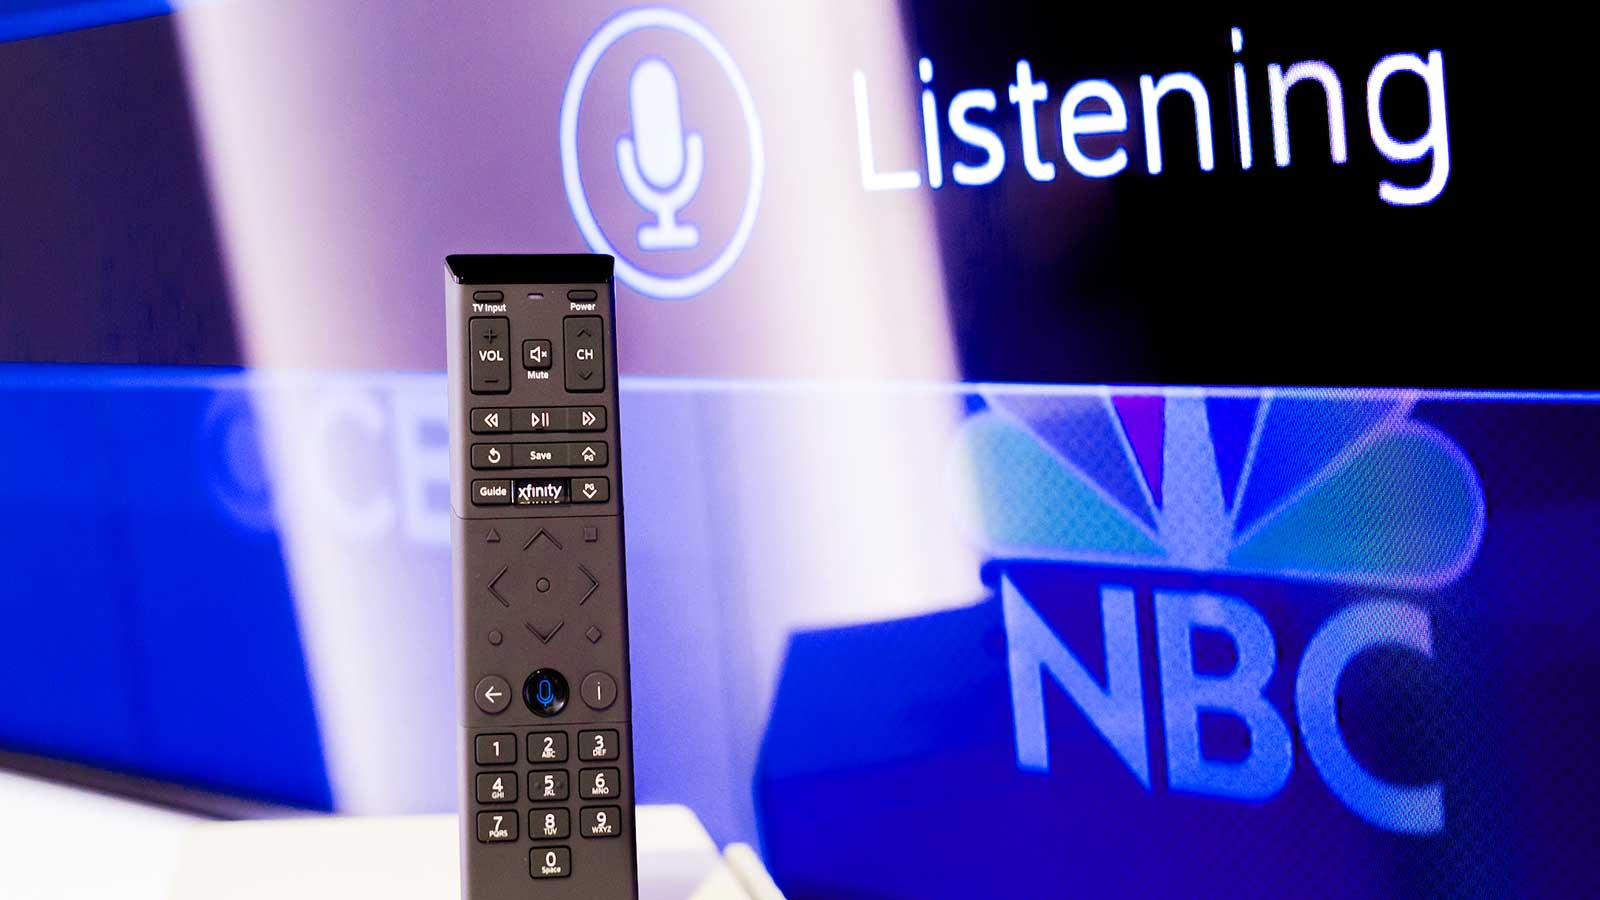 Users will be able to buy tickets through their Comcast television